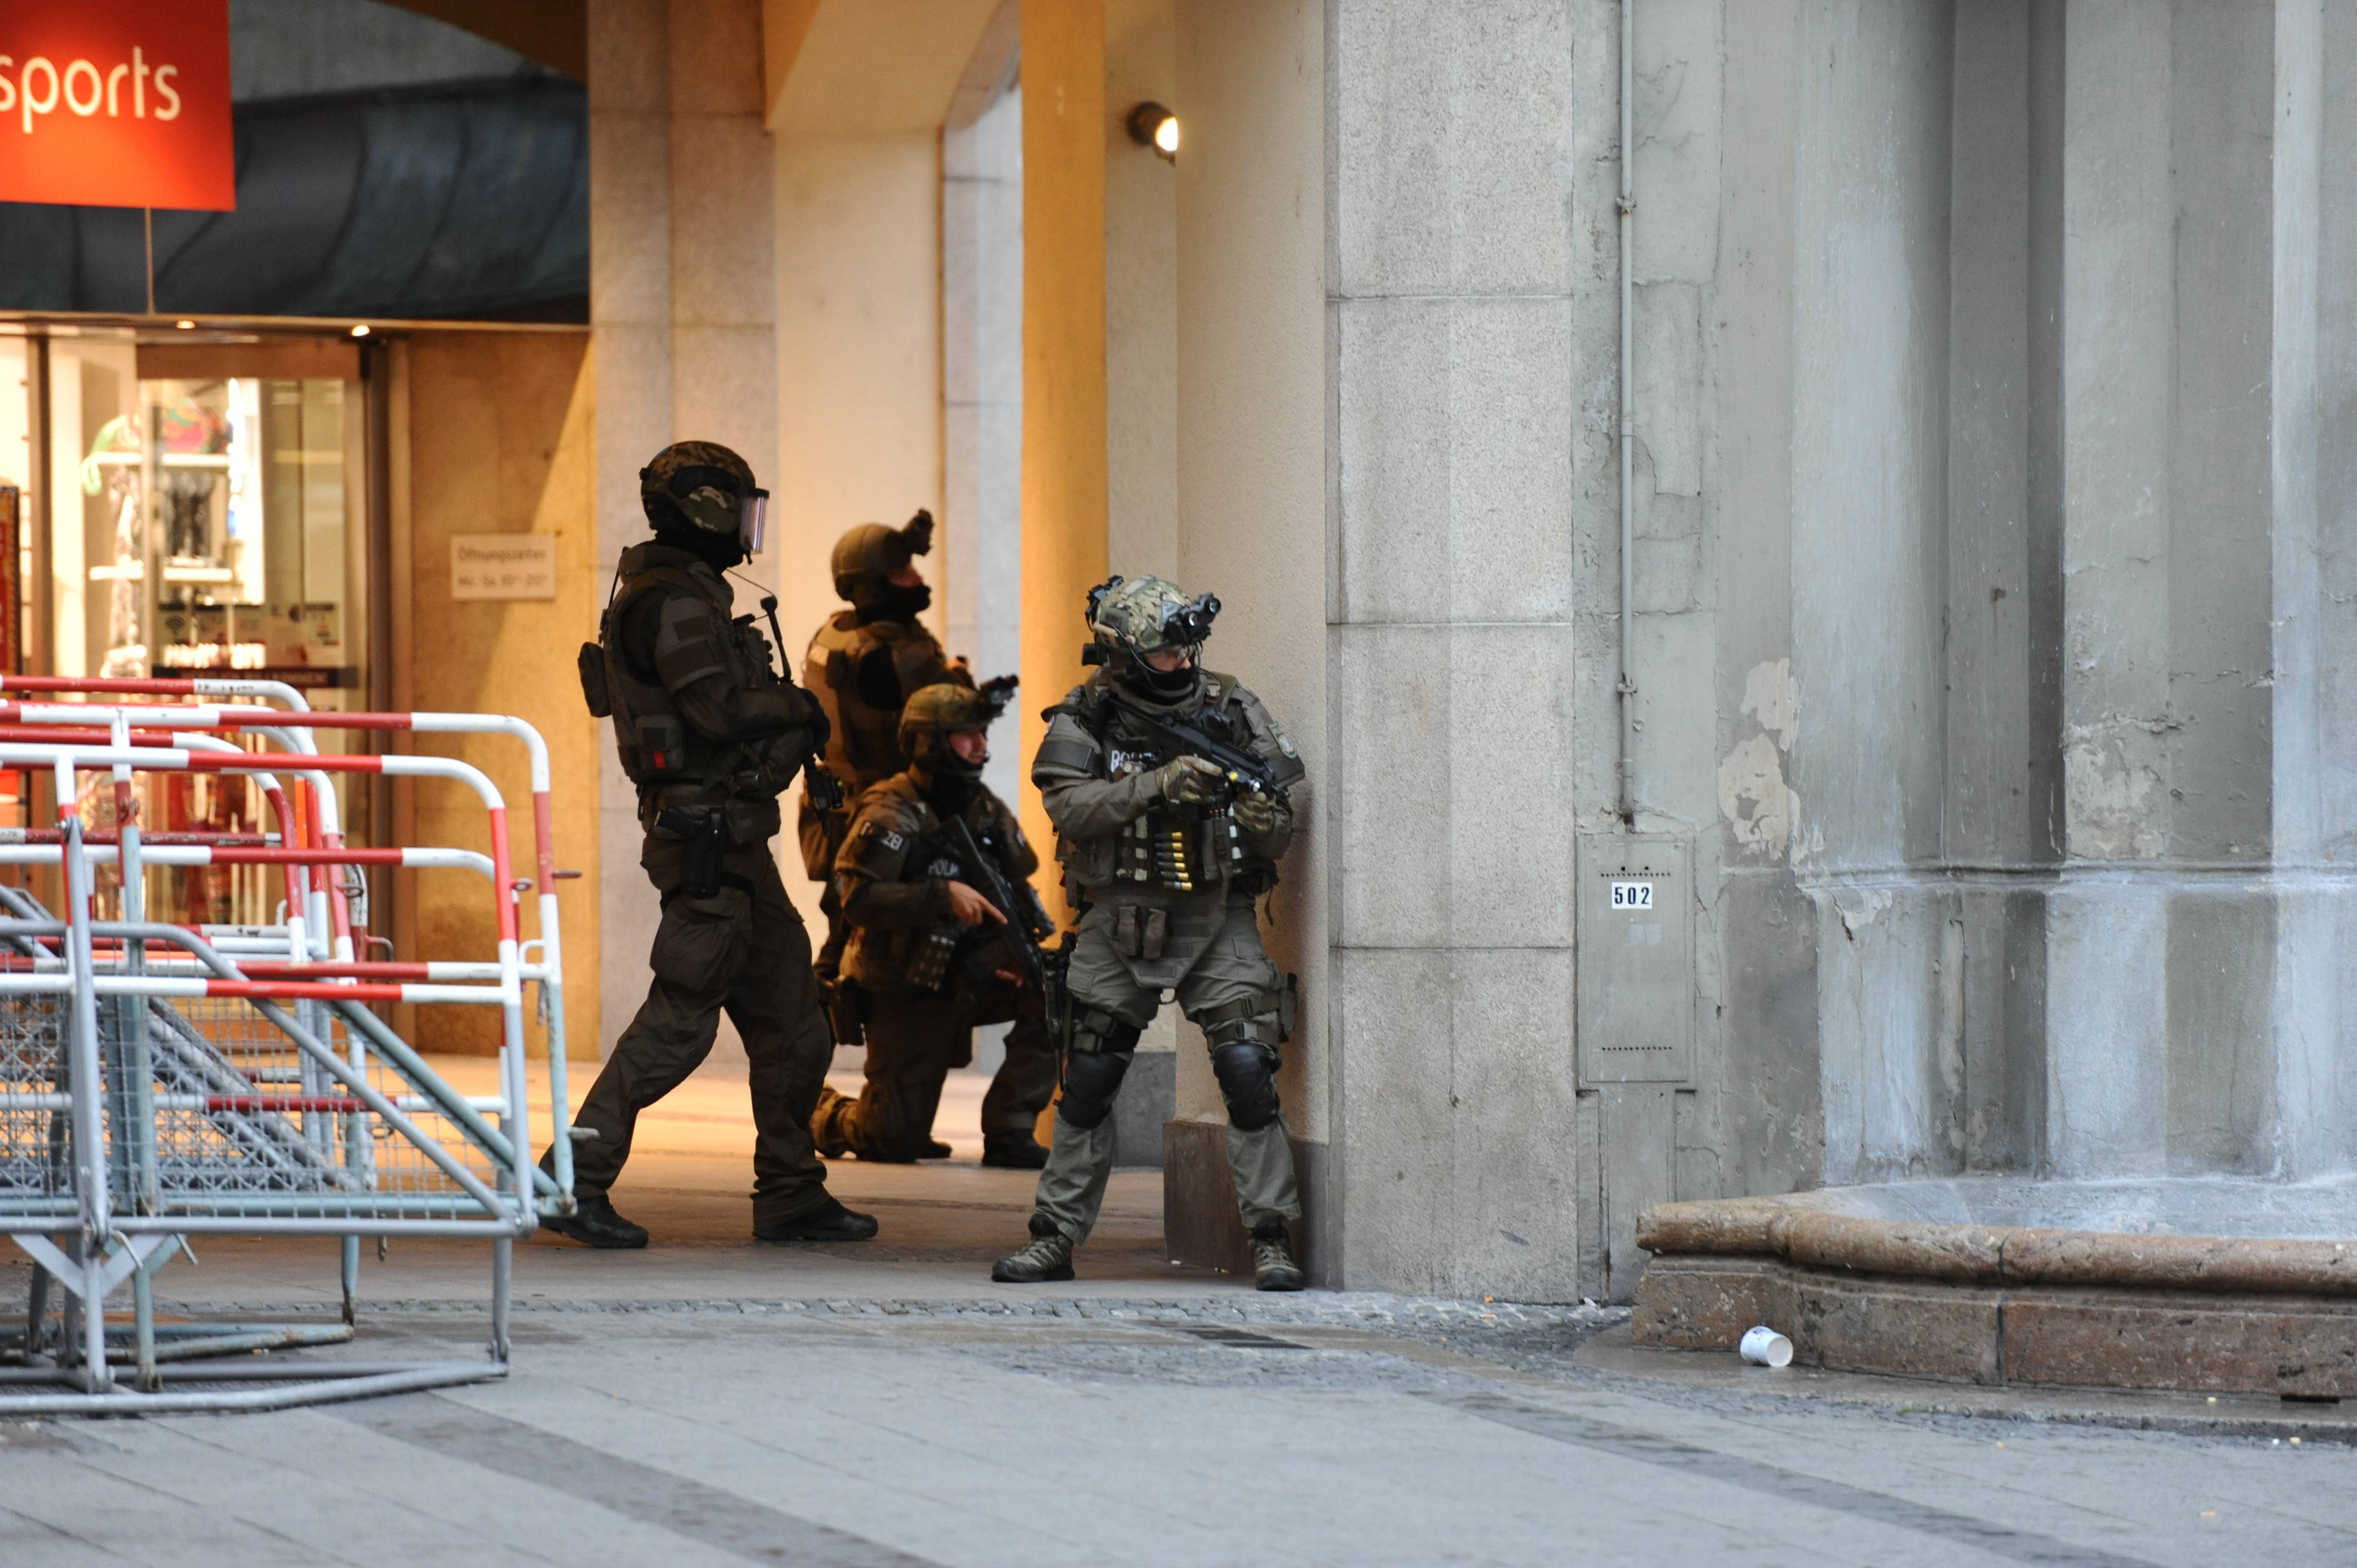 Heavily armed police forces operate at Karlsplatz (Stachus) square after a shooting in the Olympia shopping center was reported in Munich.